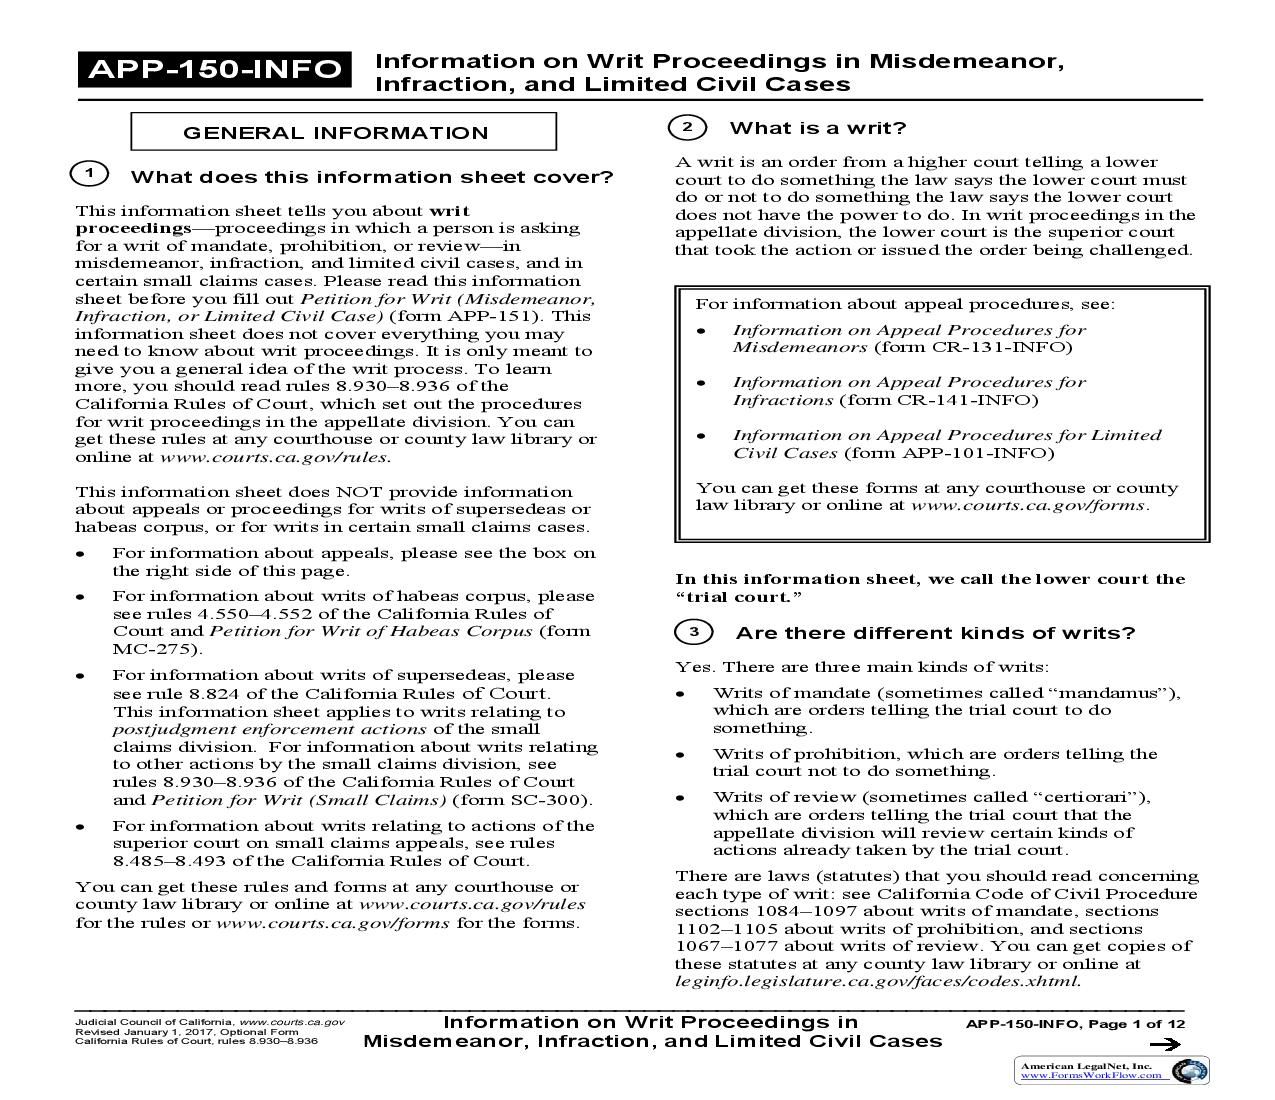 Information On Writ Proceedings In Misdemeanor Infraction And Limited Civil Cases {APP-150-INFO} | Pdf Fpdf Doc Docx | California